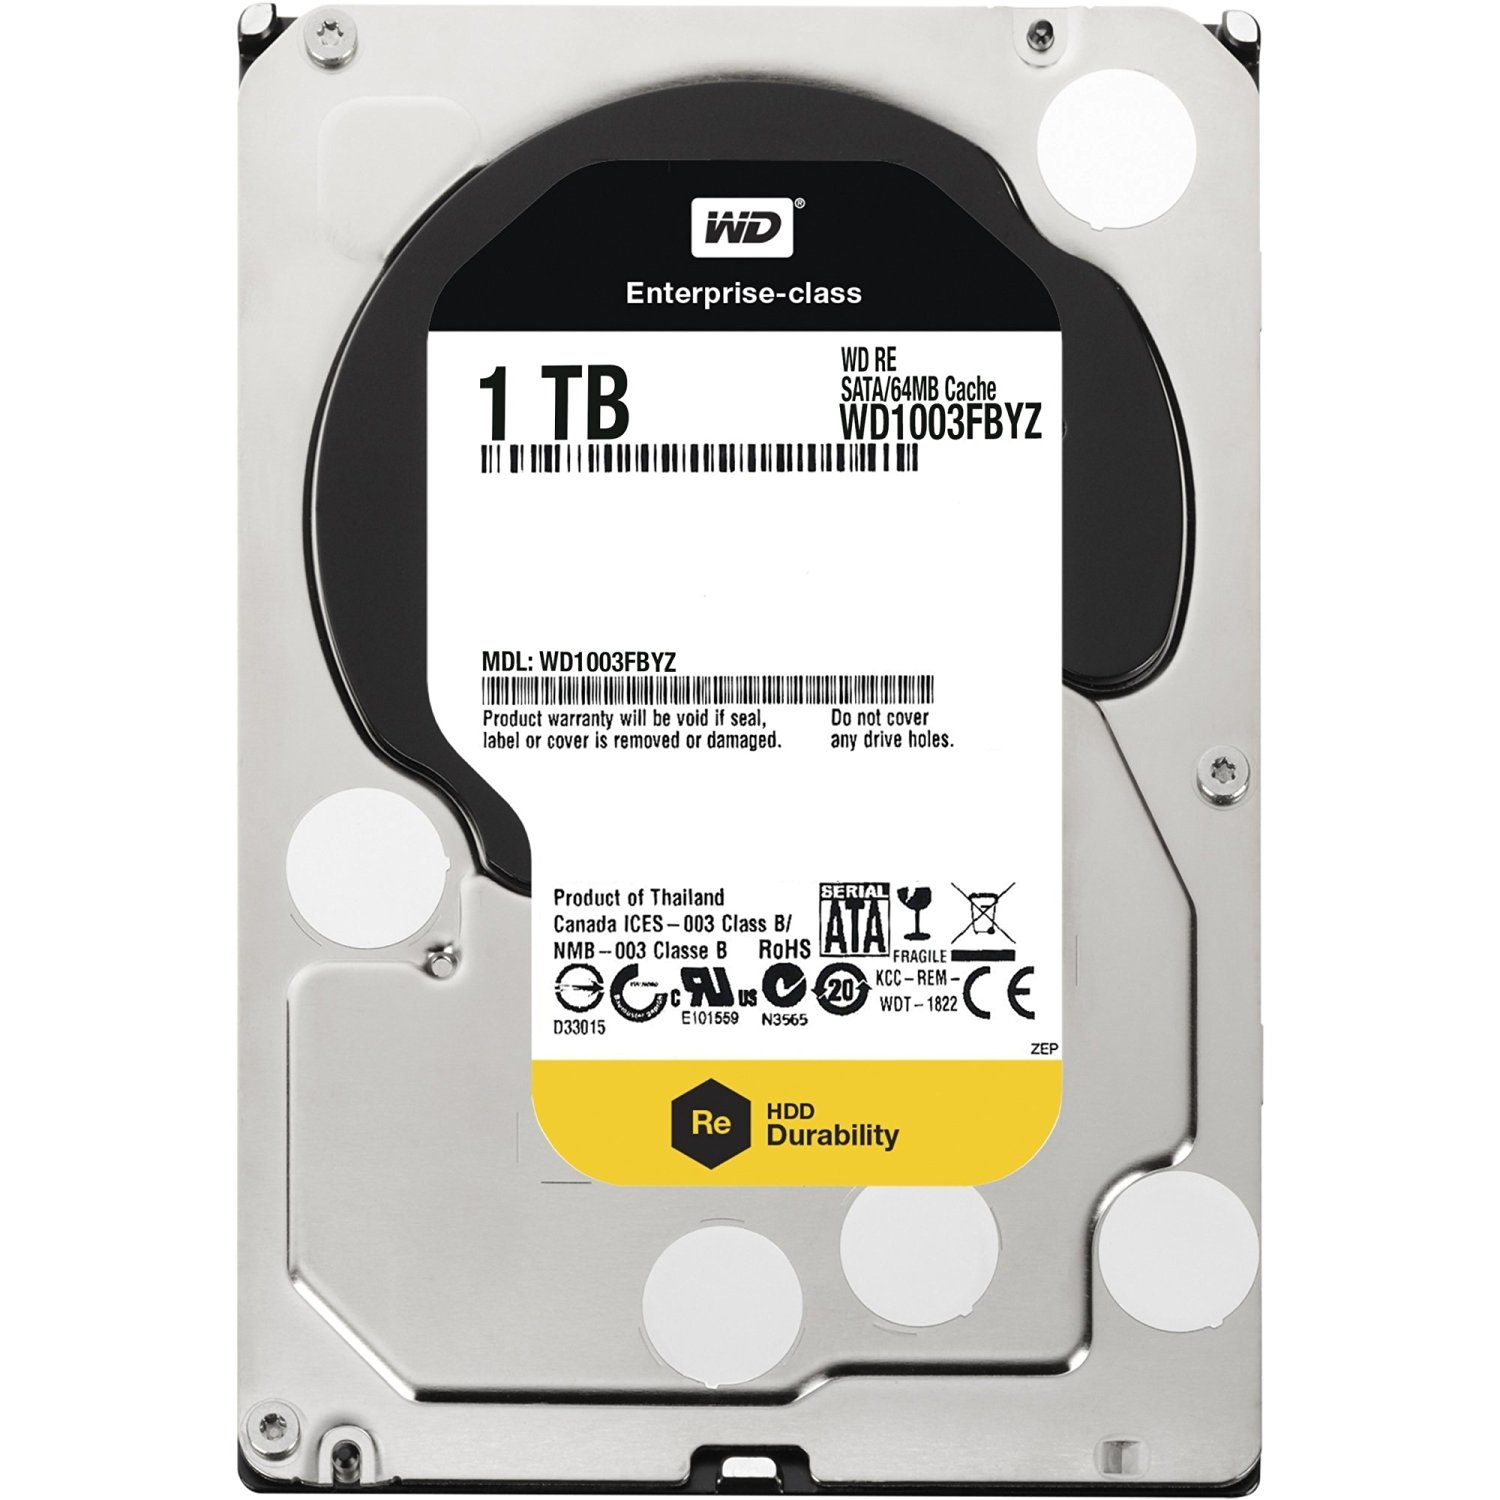 Cheap Wd 1003 Find Deals On Line At Alibabacom Hdd Harddisk Internal Blue 1tb 35 Sata 3 7200 Rpm Hardisk 1 Tb Get Quotations Western Digital Wd1003fbyz Re 64mb 35in 6gb